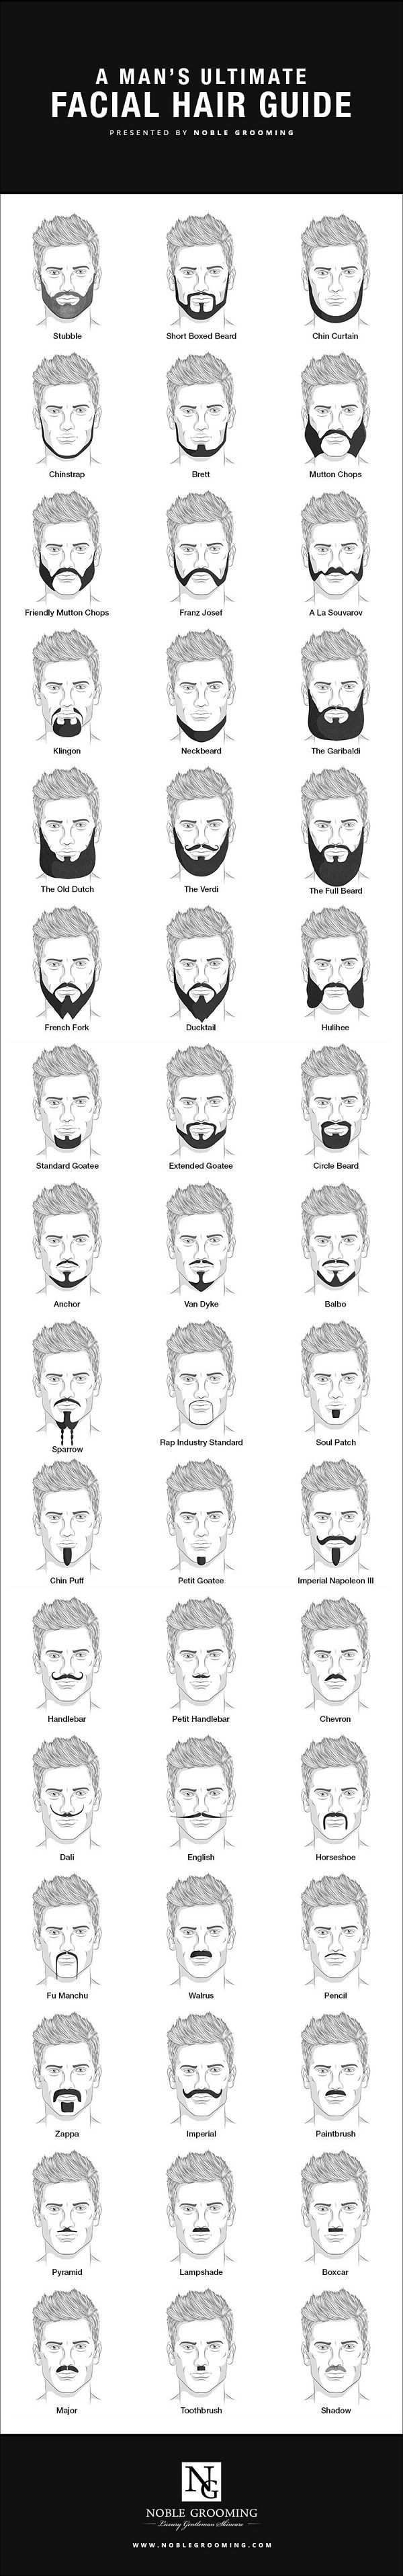 345 best hair style images on pinterest | hairstyles, men's